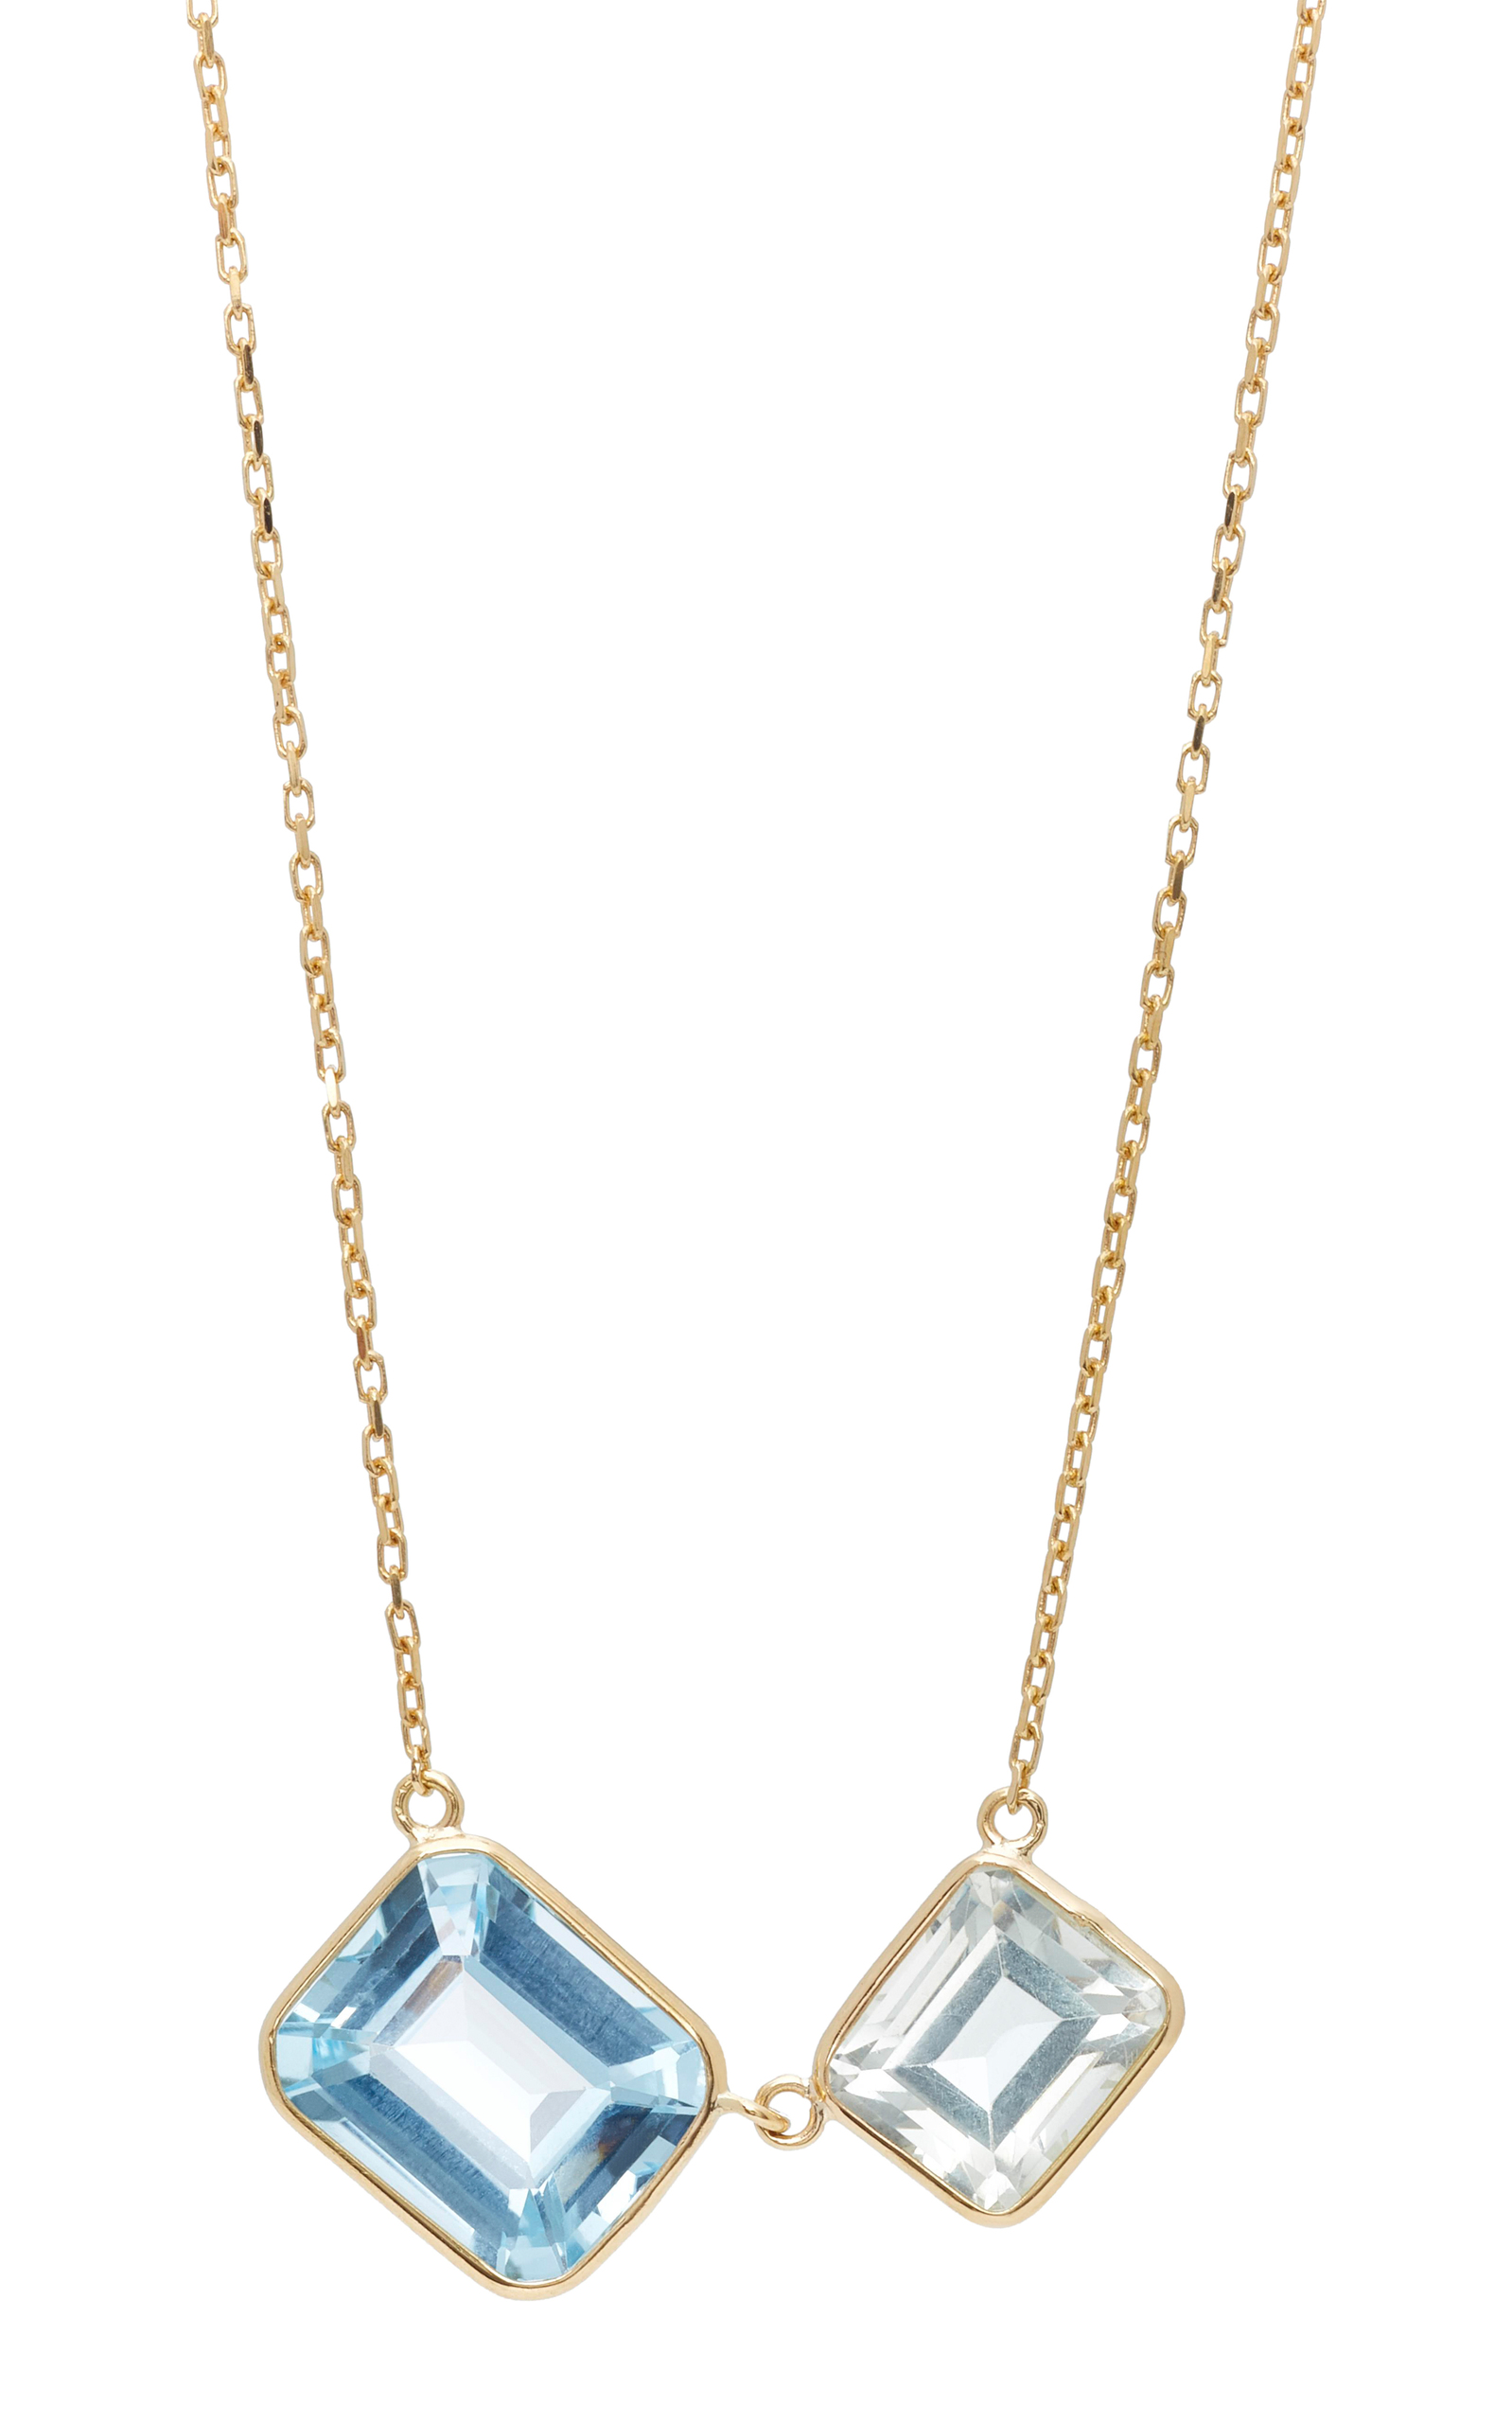 18K Gold Topaz Necklace Yi Collection ooLHH8d